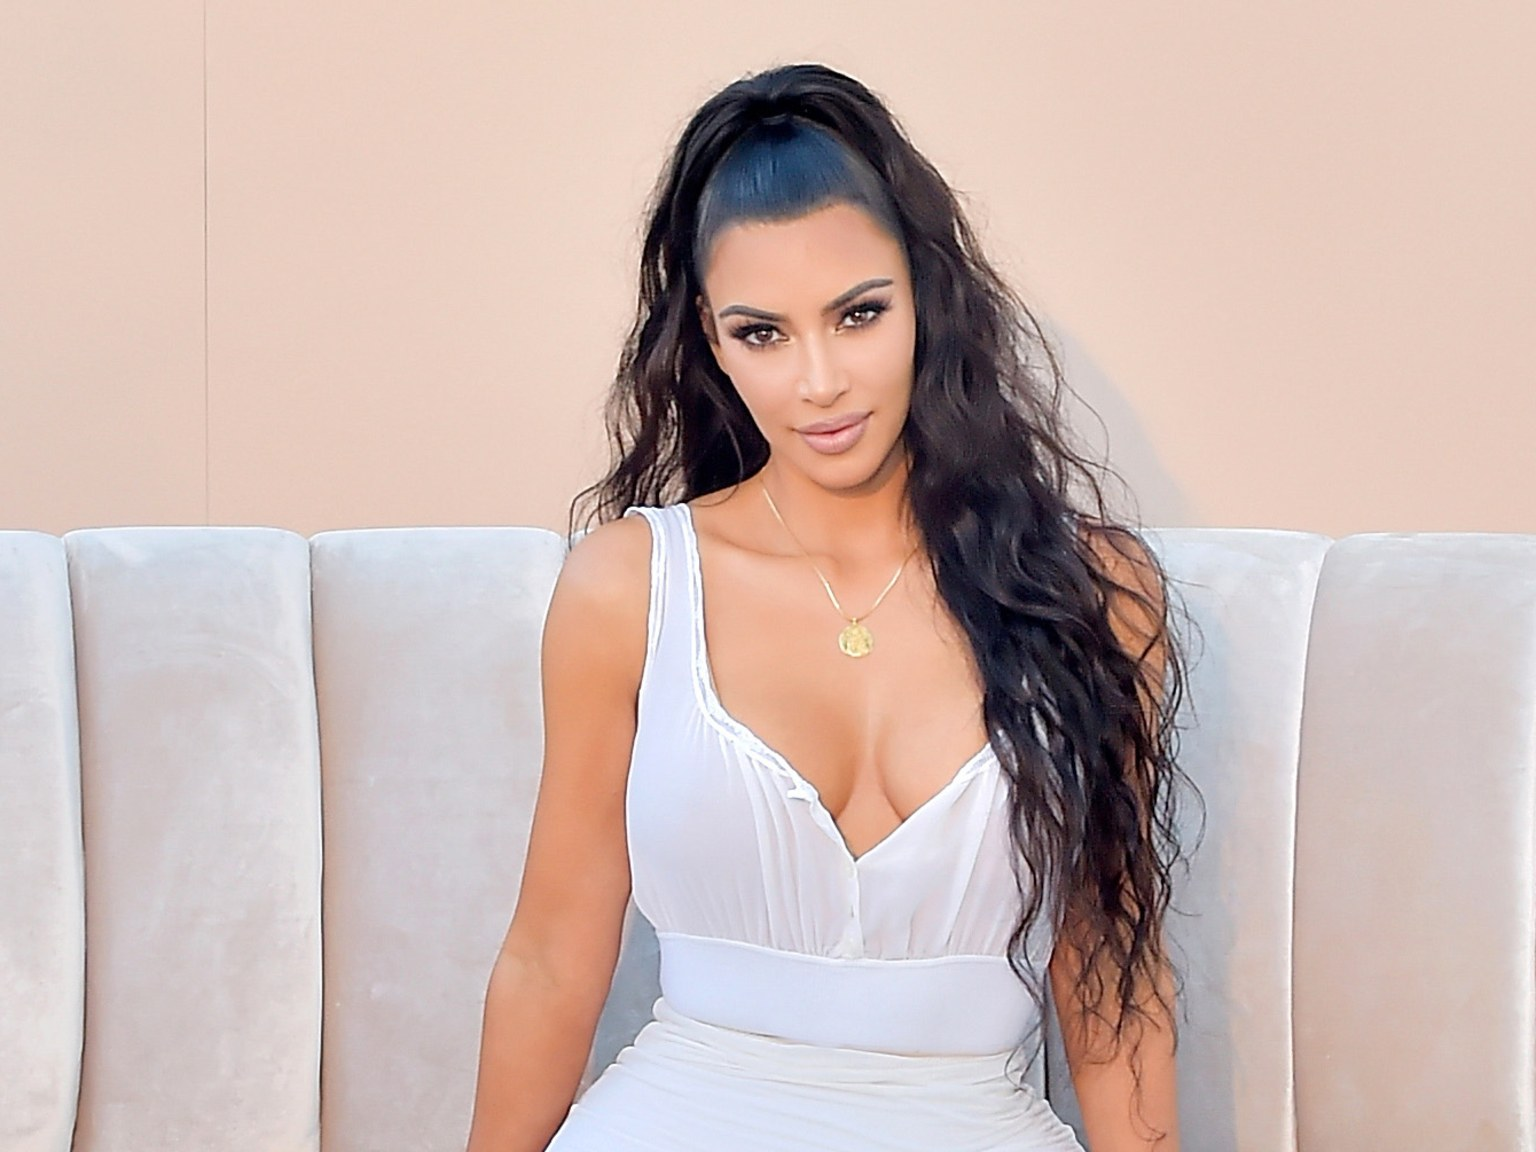 kim-kardashian-explains-that-skims-new-line-is-not-shapewear-for-pregnant-women-but-instead-meant-to-provide-support